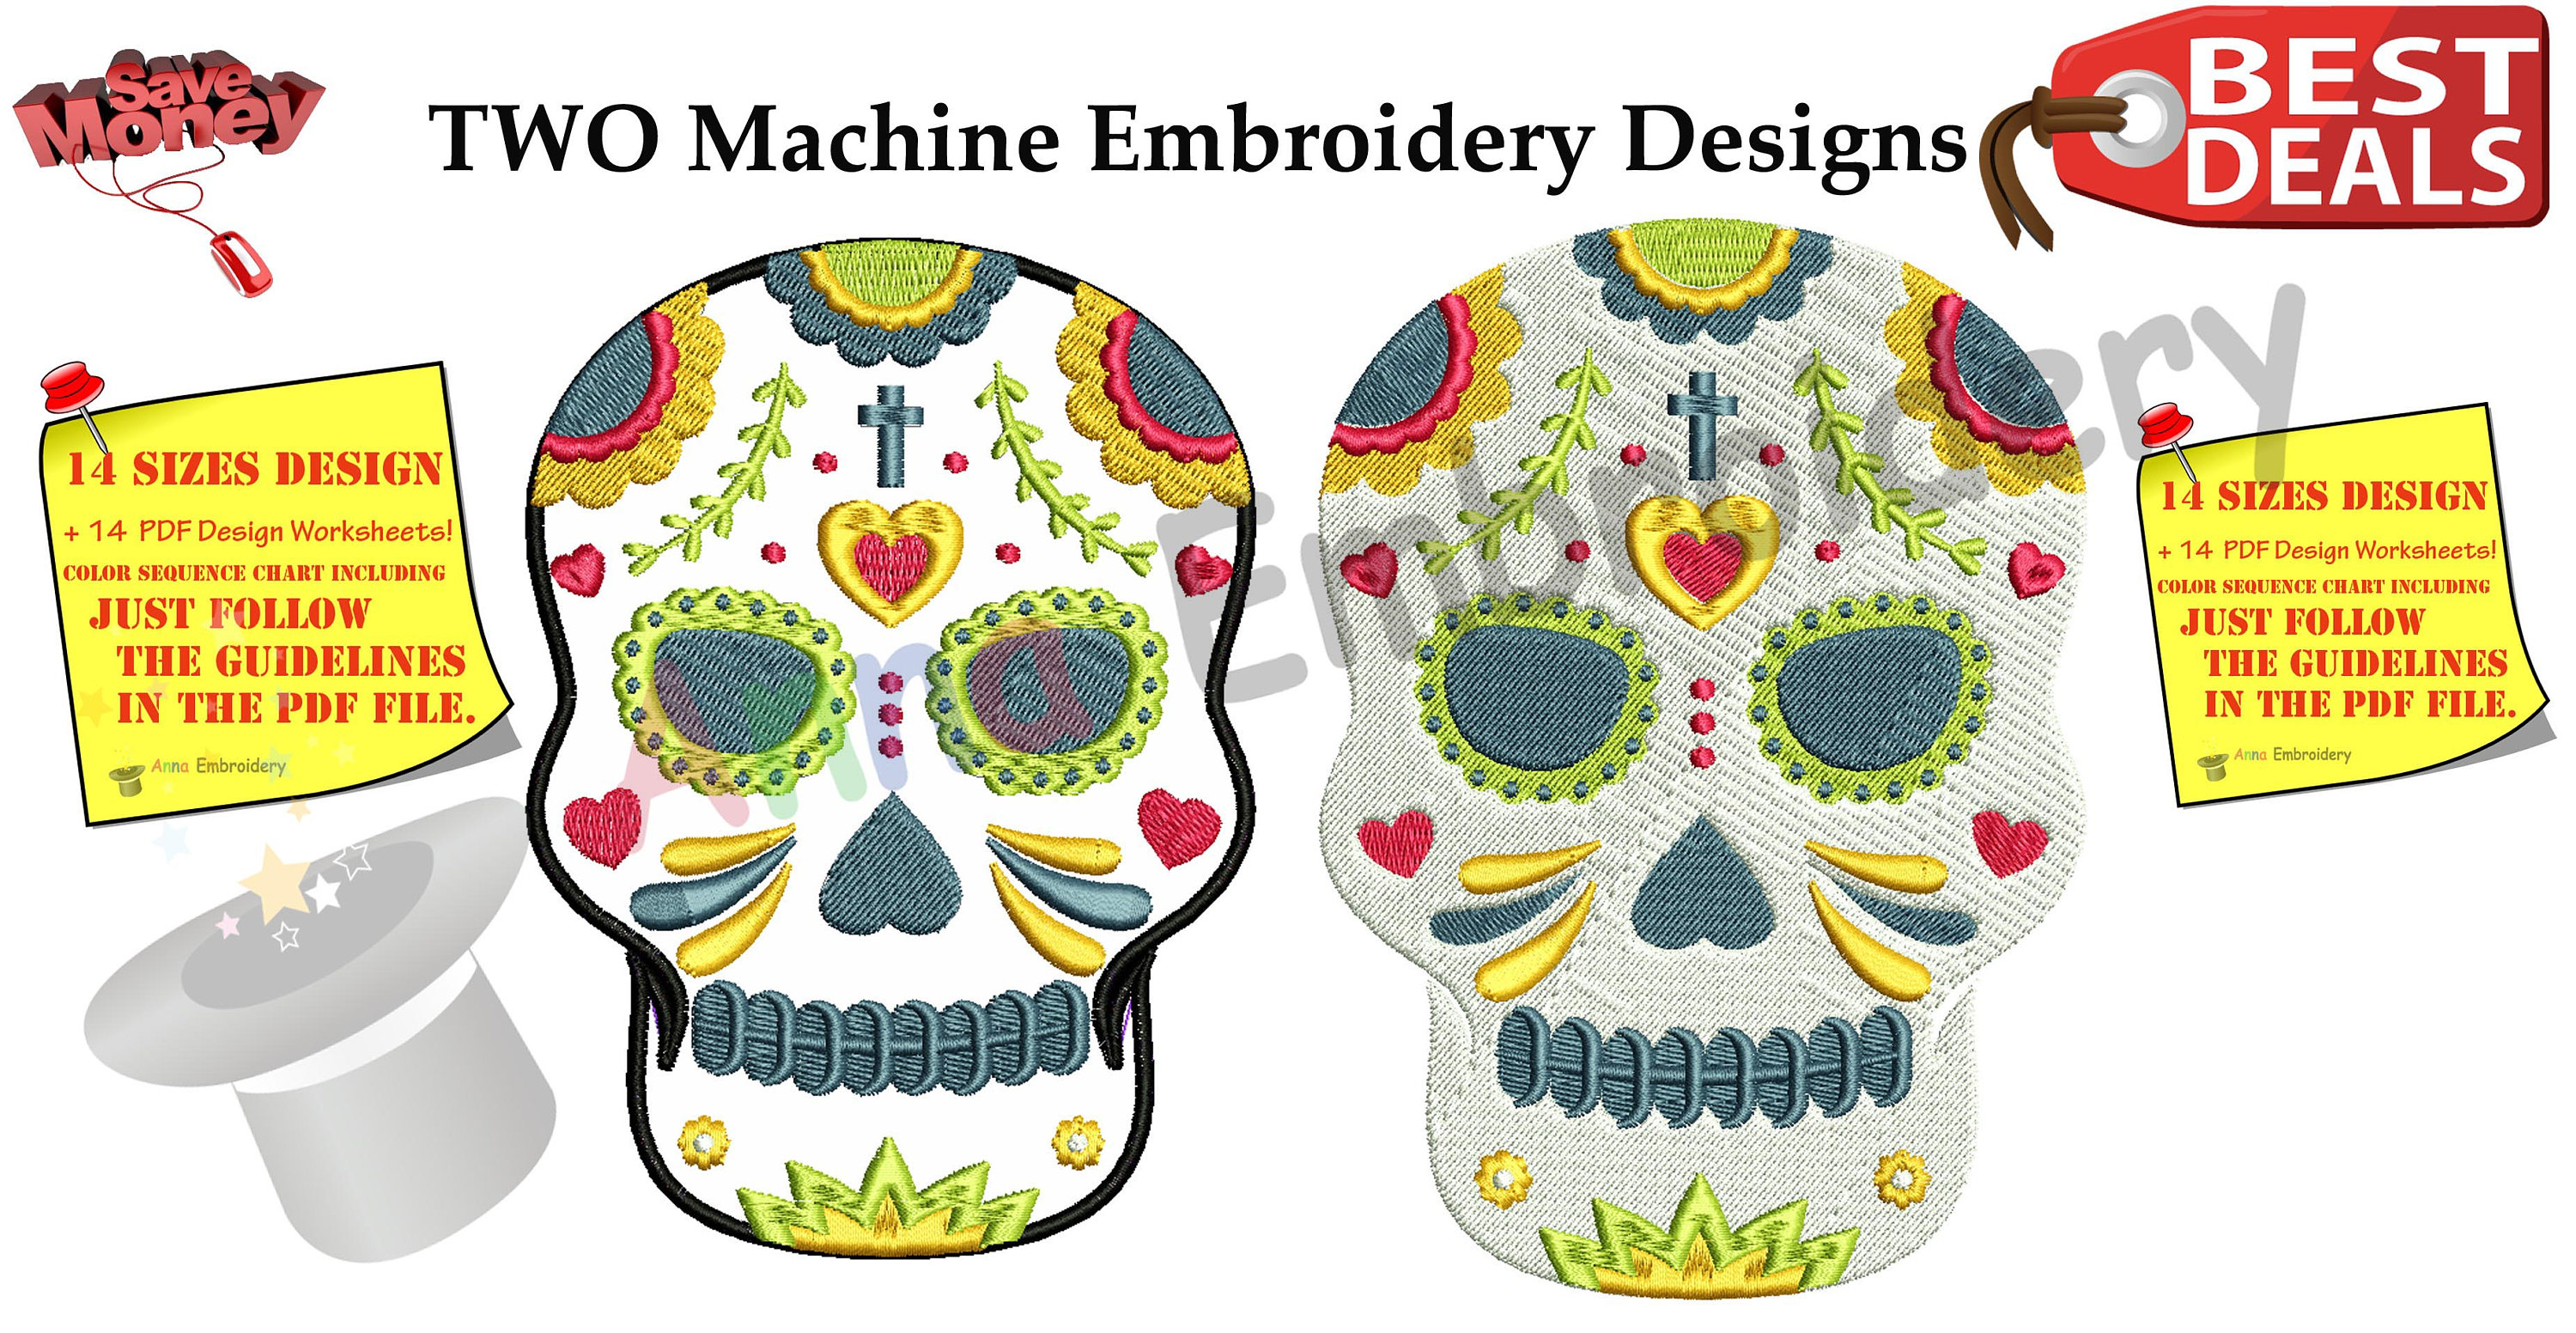 Embroidery Machine Patterns Download Skull Applique Embroidery Design Sugar Skull Pattern Machine Patterns Instant Download Pes